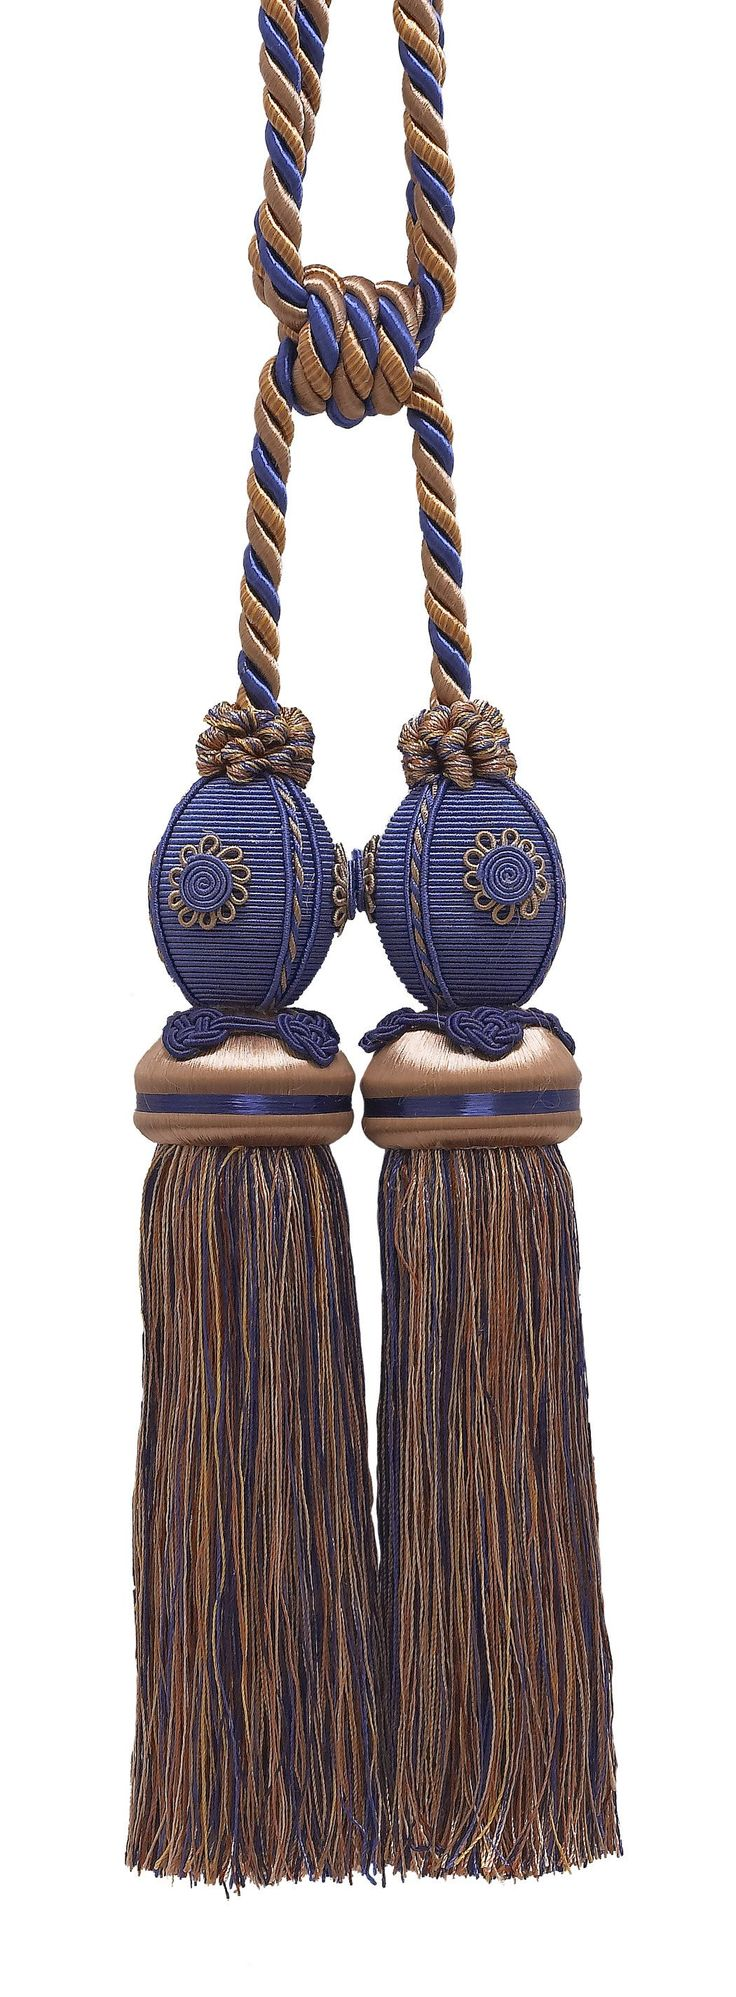 "Exquisite Ultramarine Blue, Tan Curtain & Drapery Double Tassel Tieback / 10"" tassel / 30.5"" Spread (embrace), 3/8"" Cord, Baroque Collection Style# TBB-2 Color: NAVY TAUPE 5817"